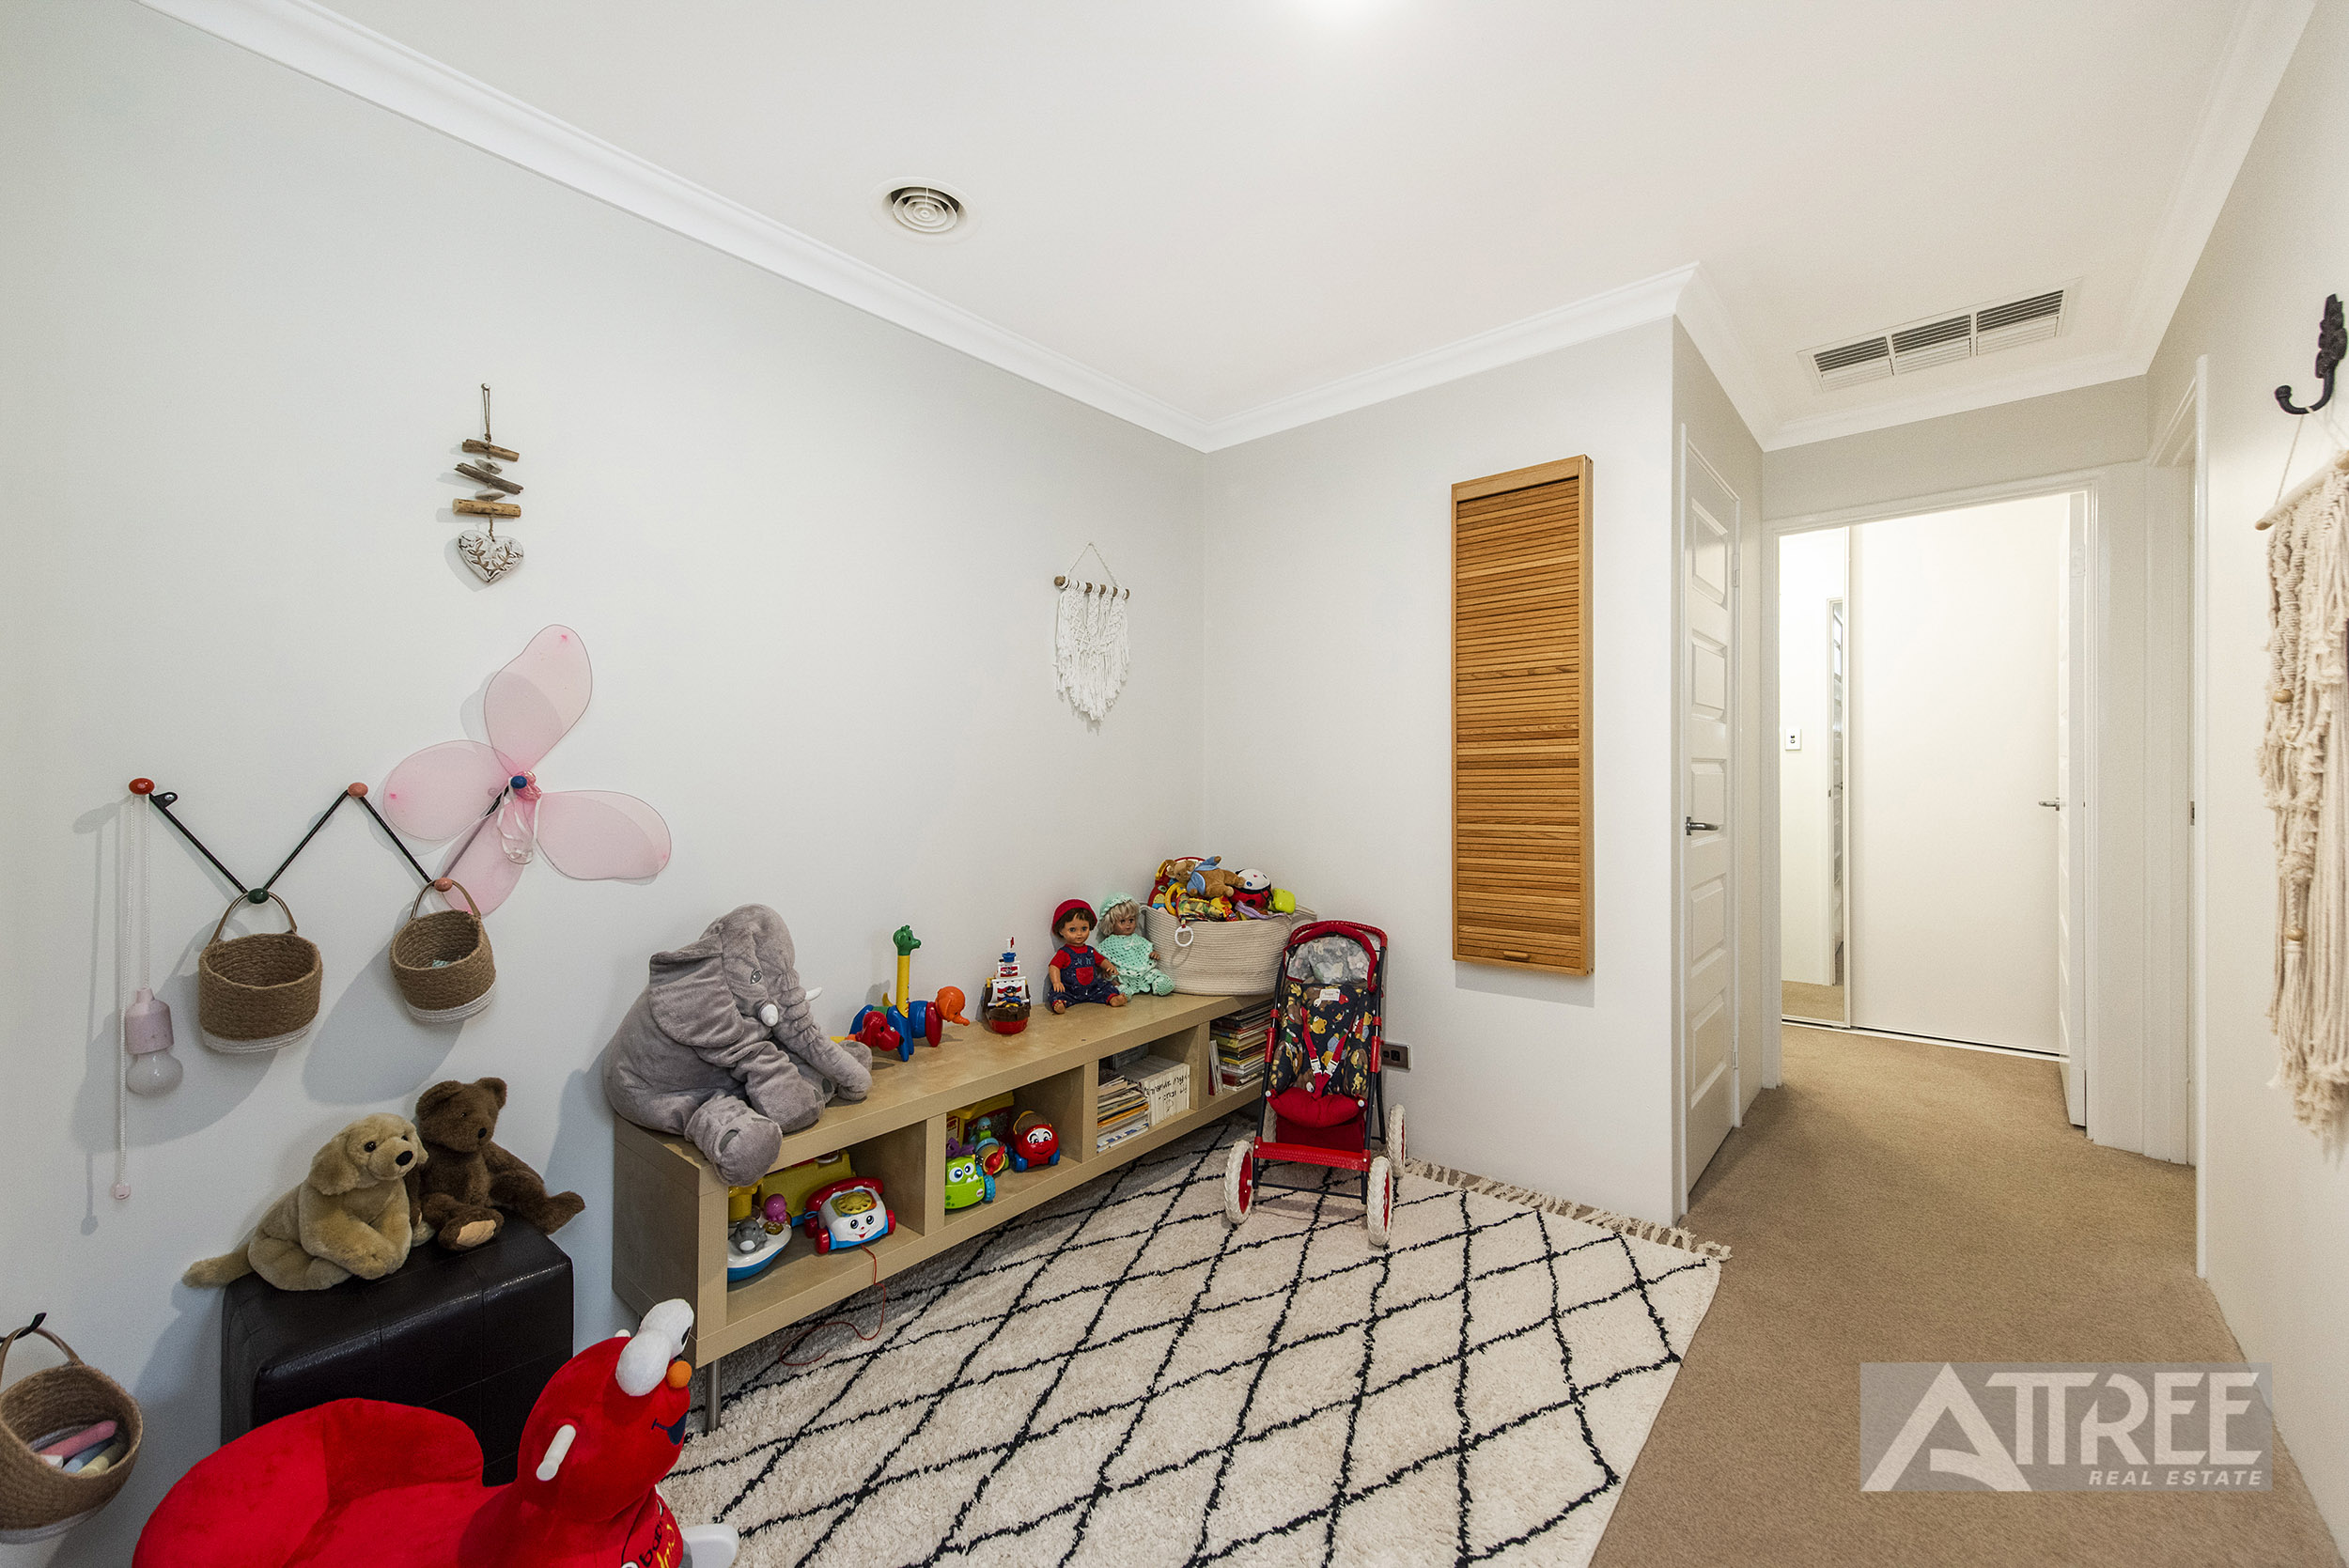 Property for sale in PIARA WATERS, 16 Birmingham Parade : Attree Real Estate